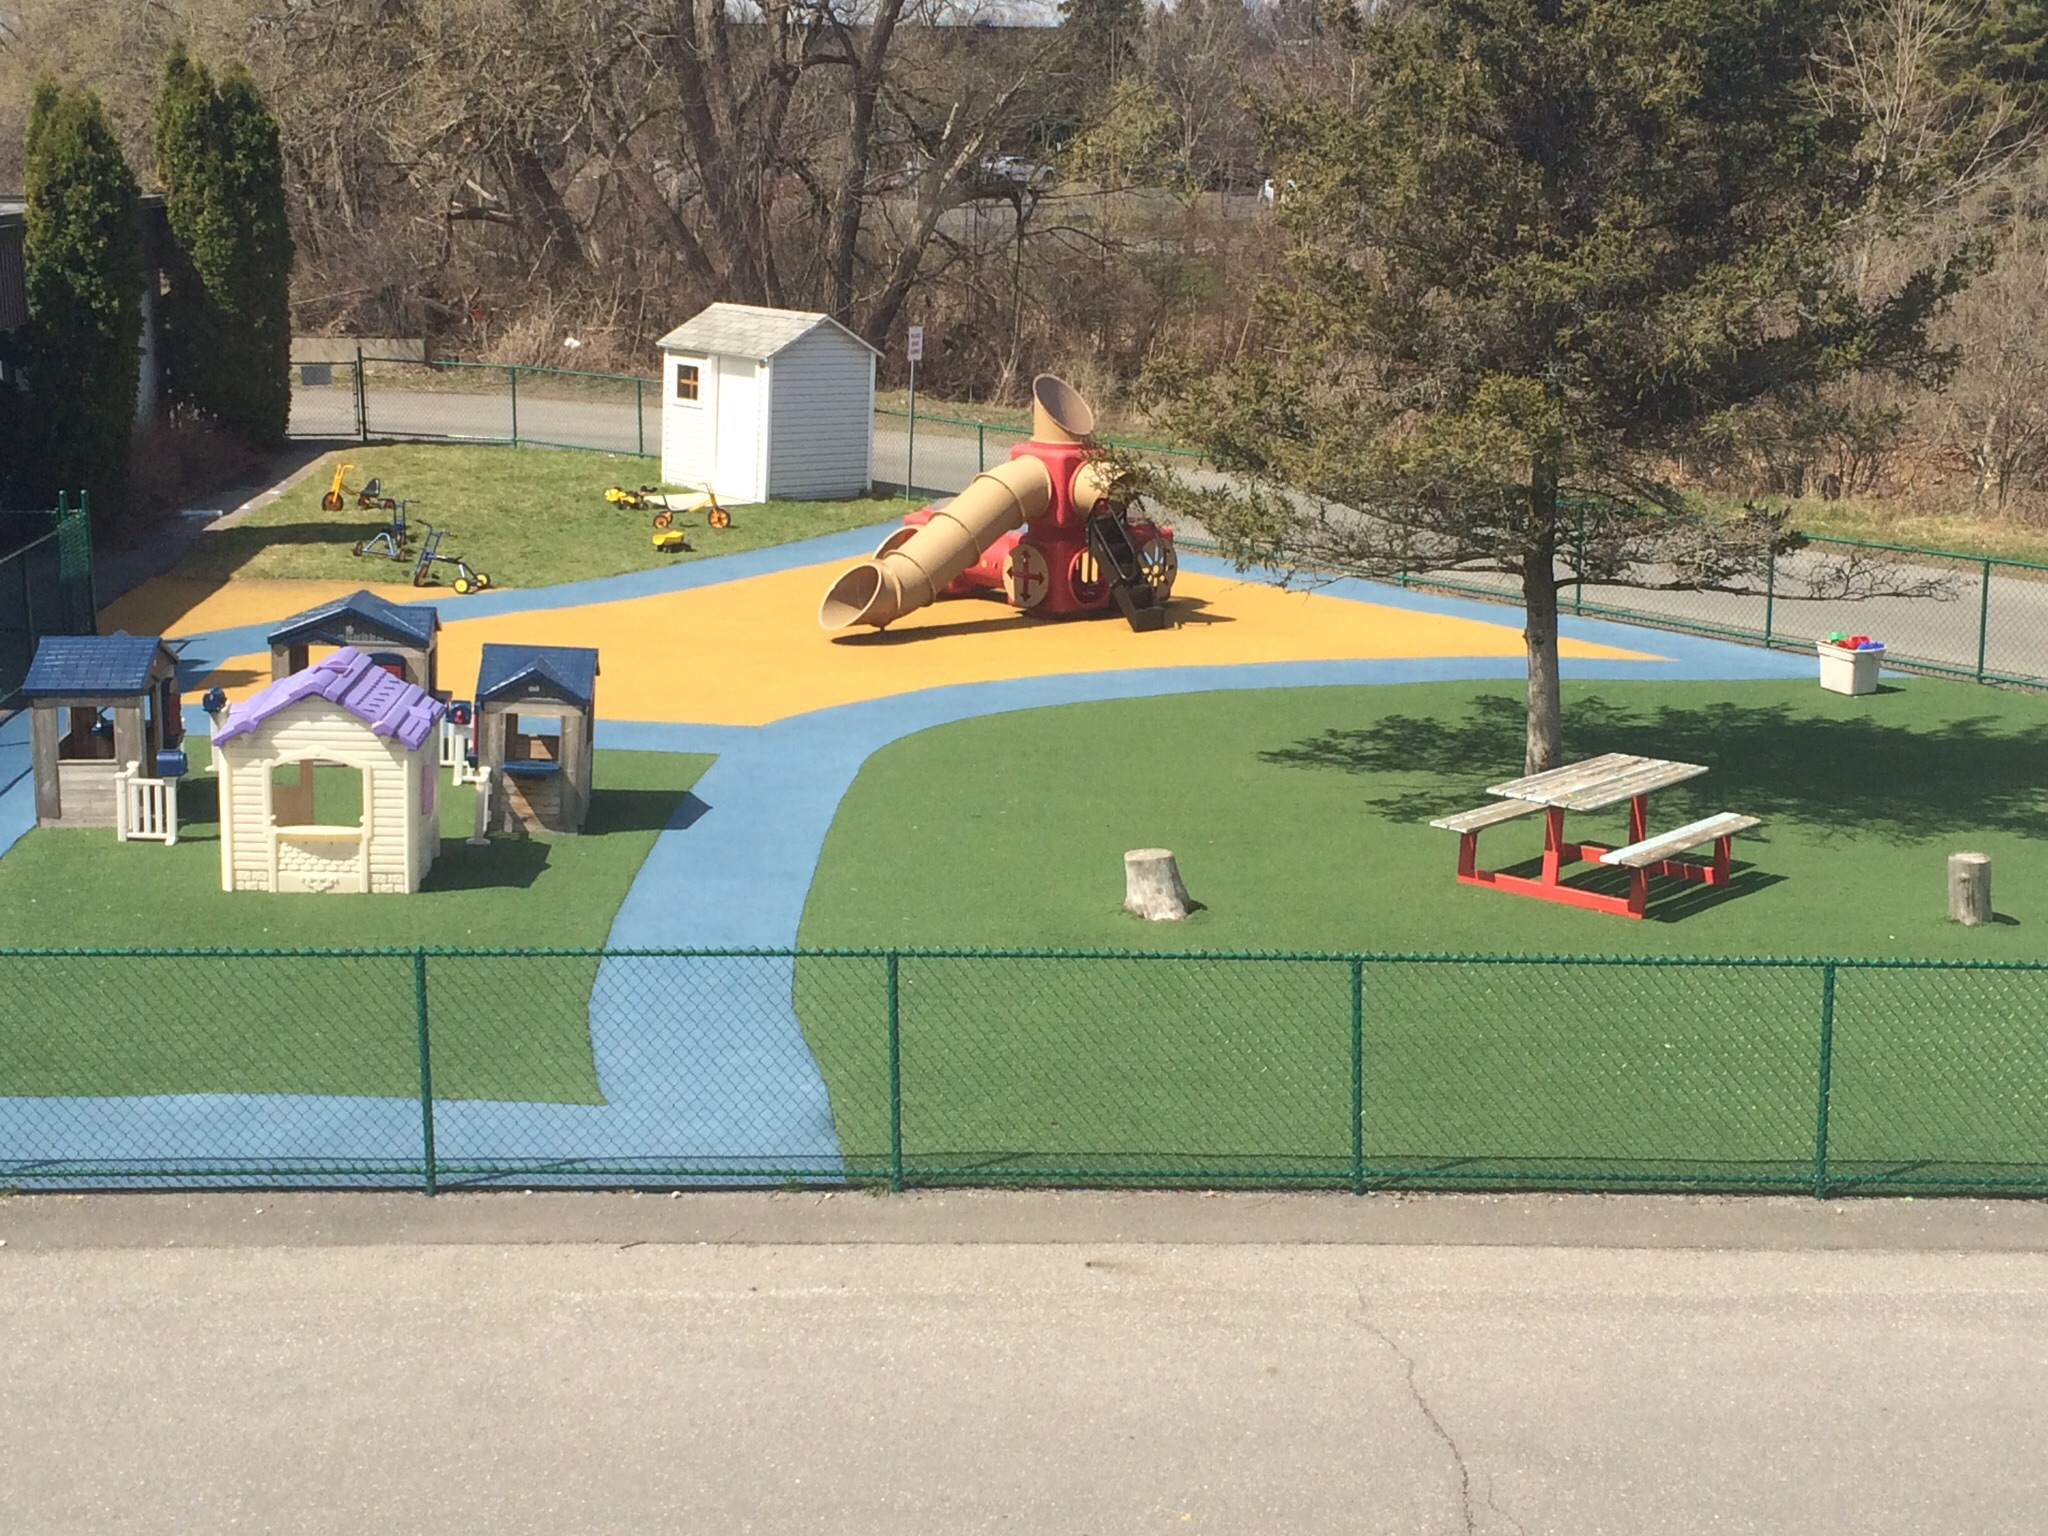 Megan's Place Playground